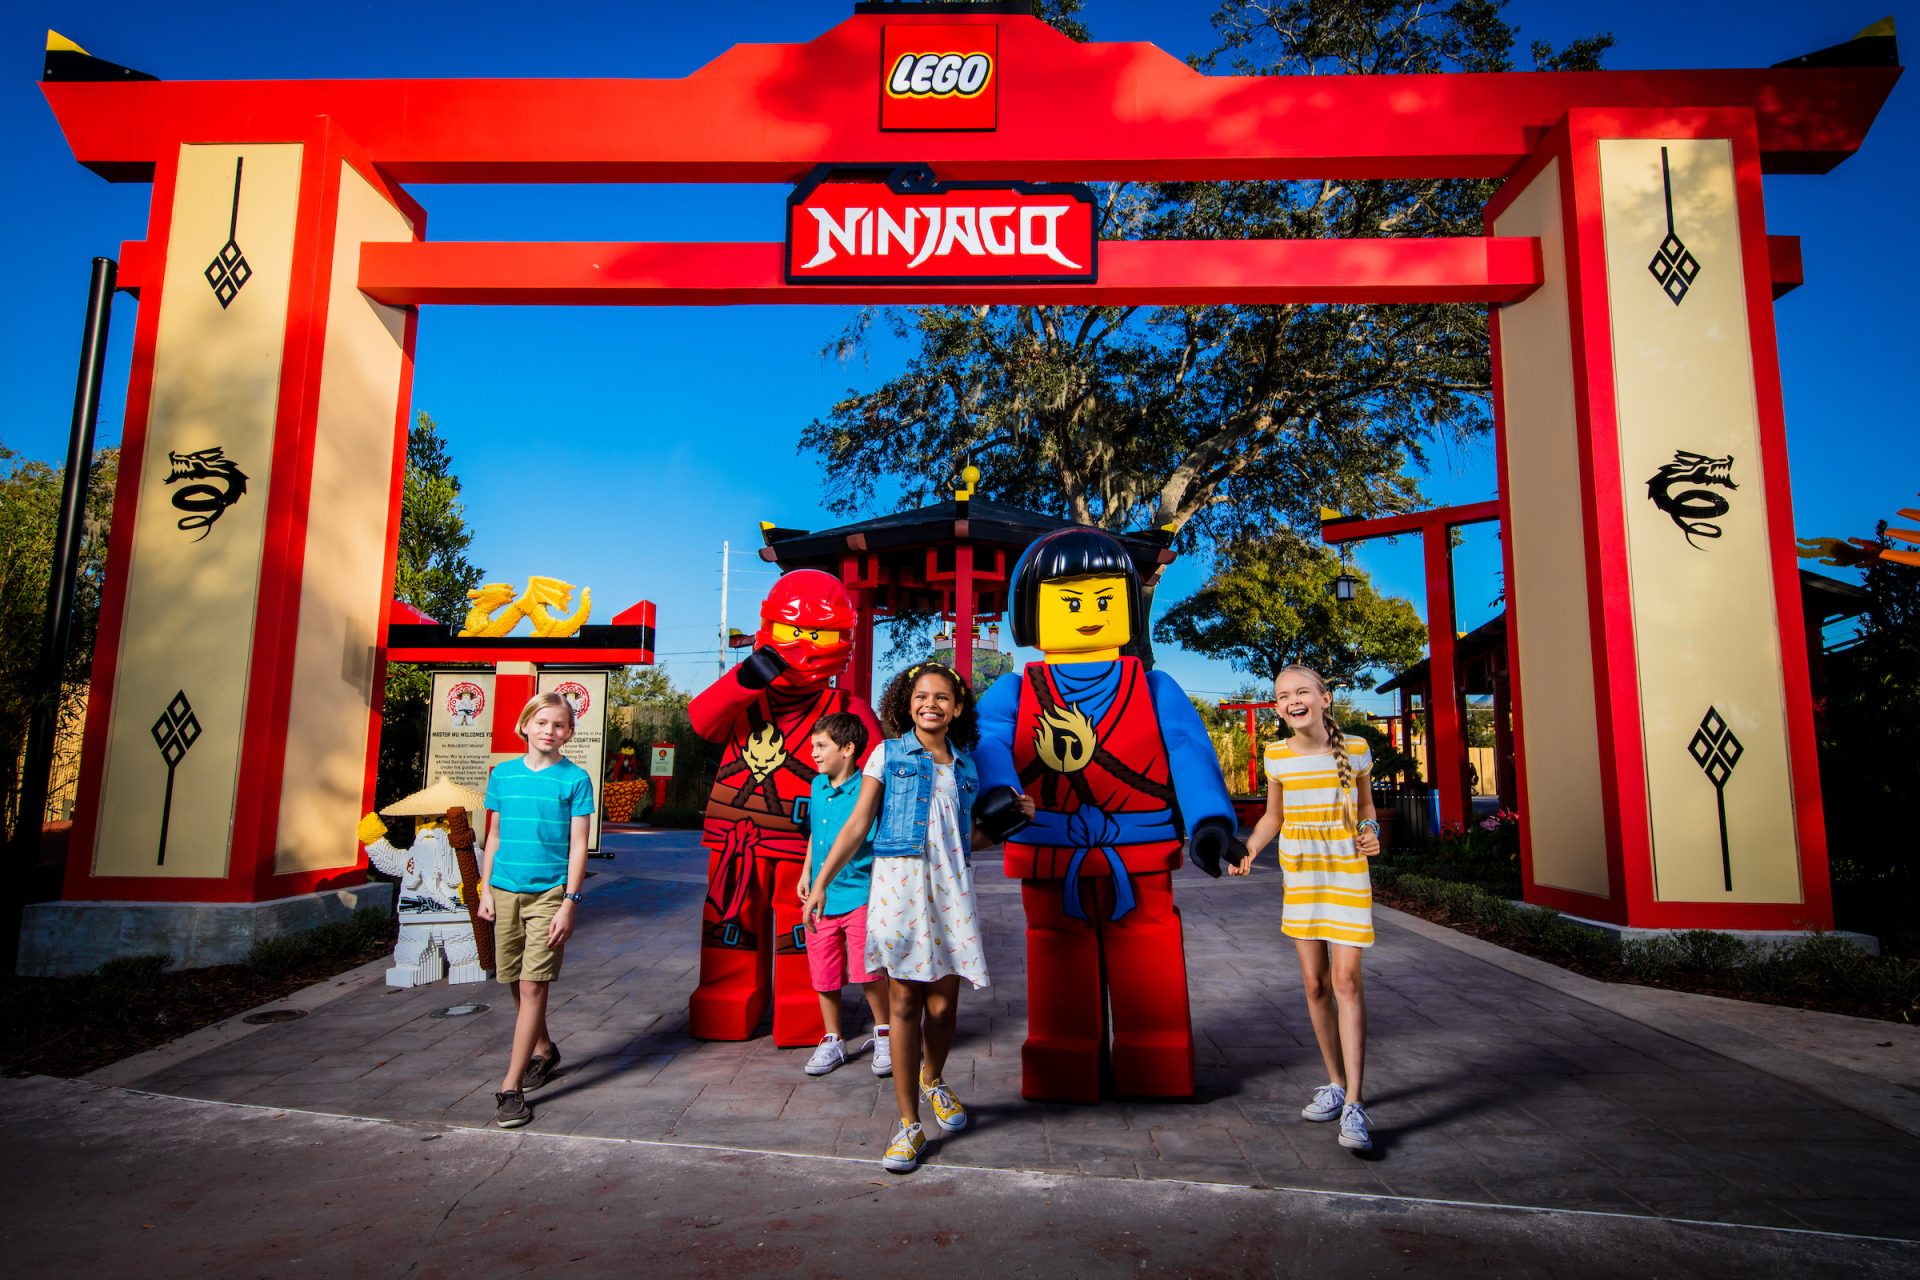 LEGO NINJAGO Days Coming to LEGOLAND Florida!